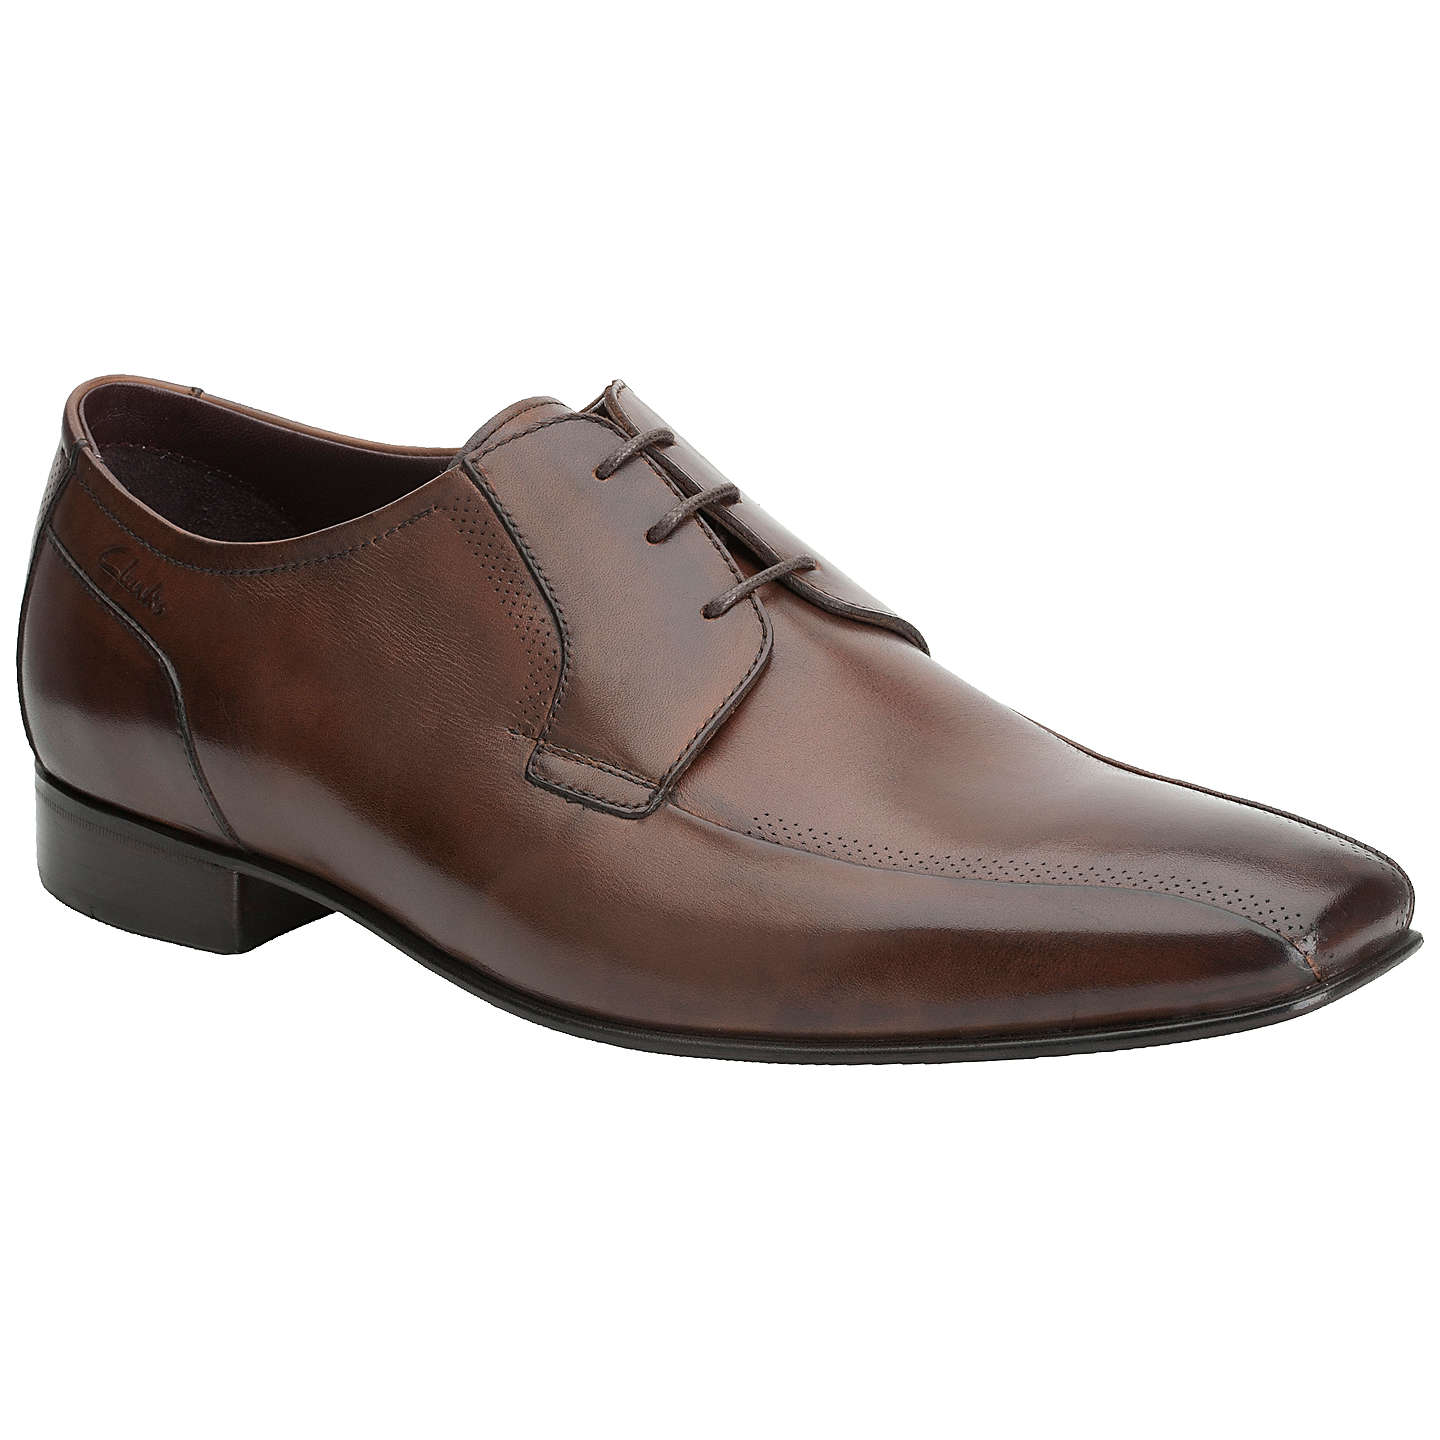 BuyClarks Chilton Leather Derby Shoes, Tan, 7 Online at johnlewis.com